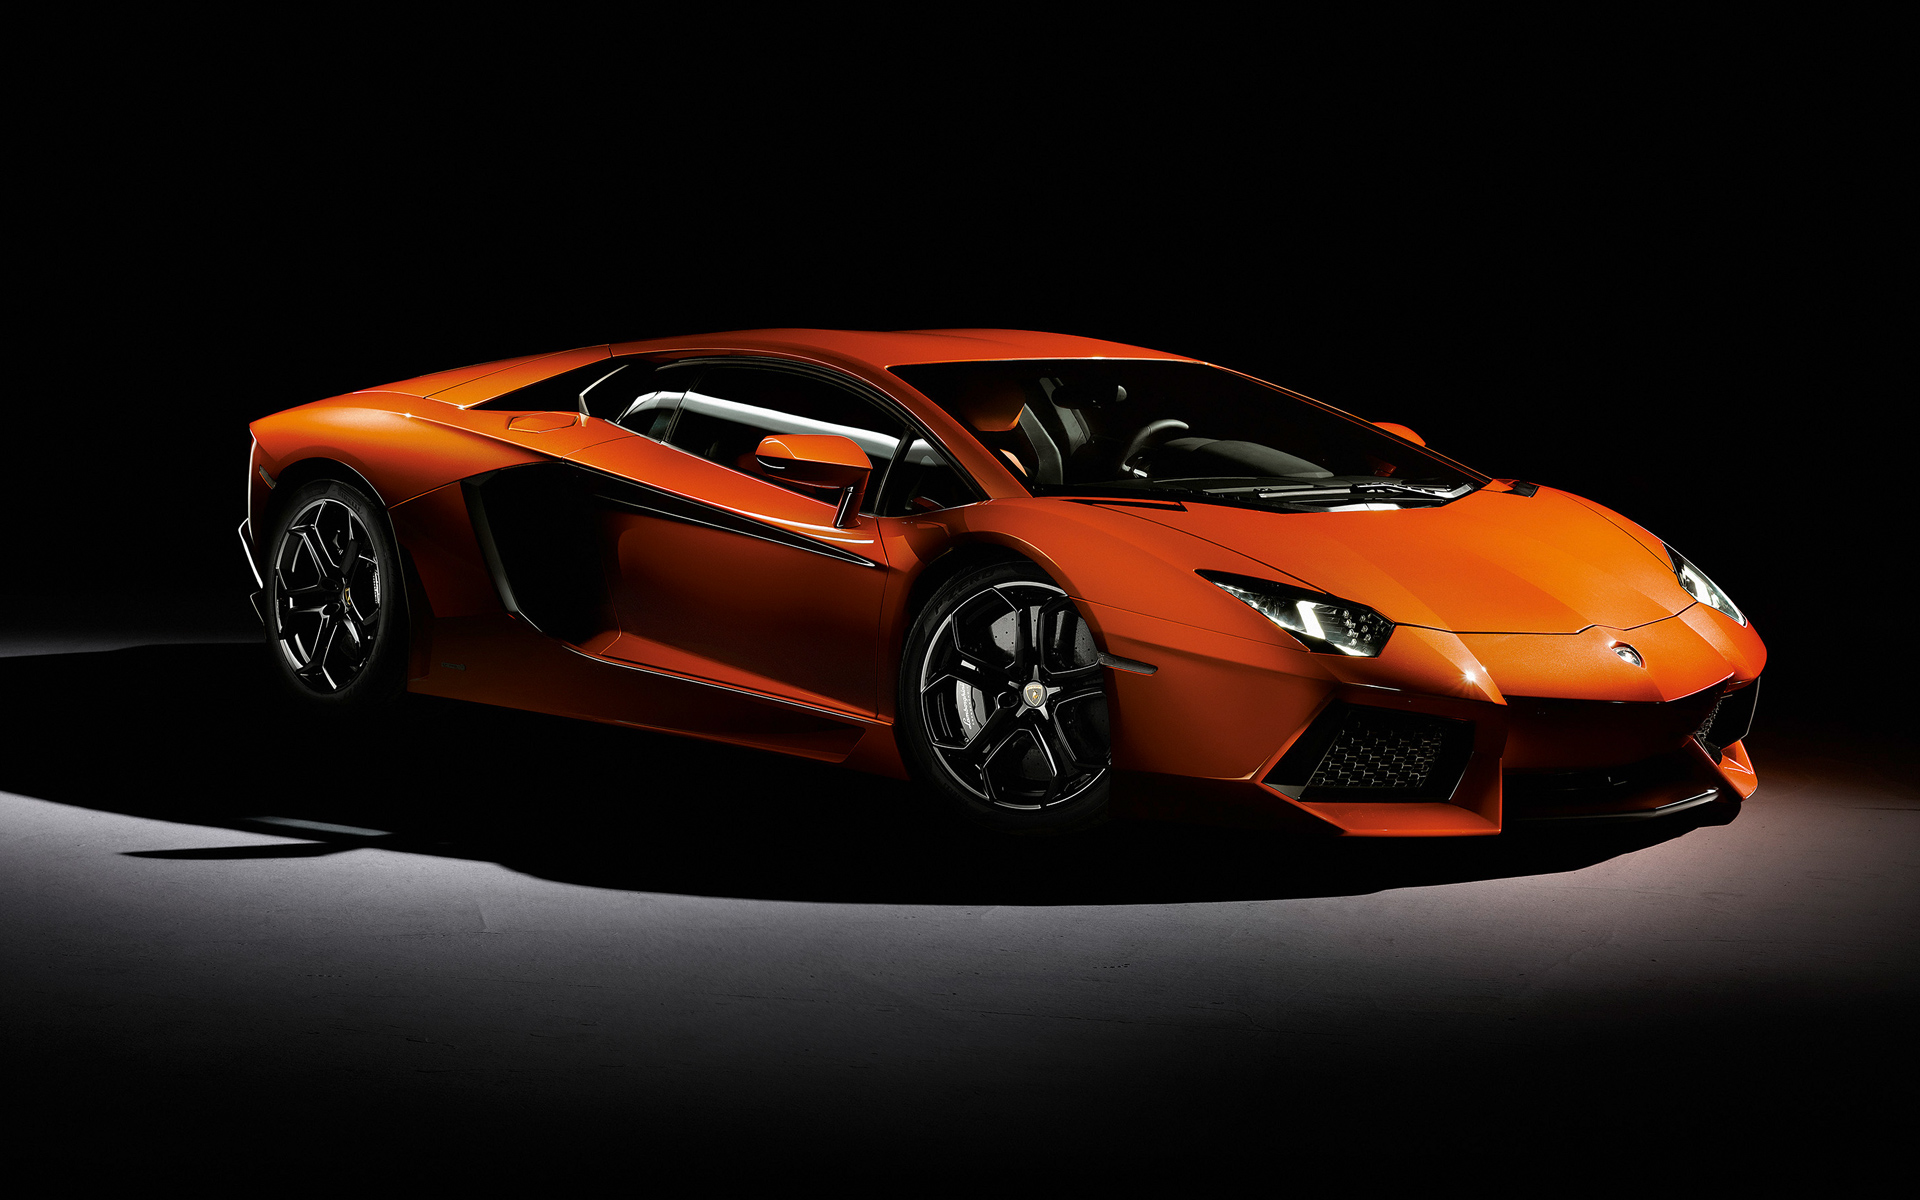 Lamborghini Aventador Orange Wallpaper